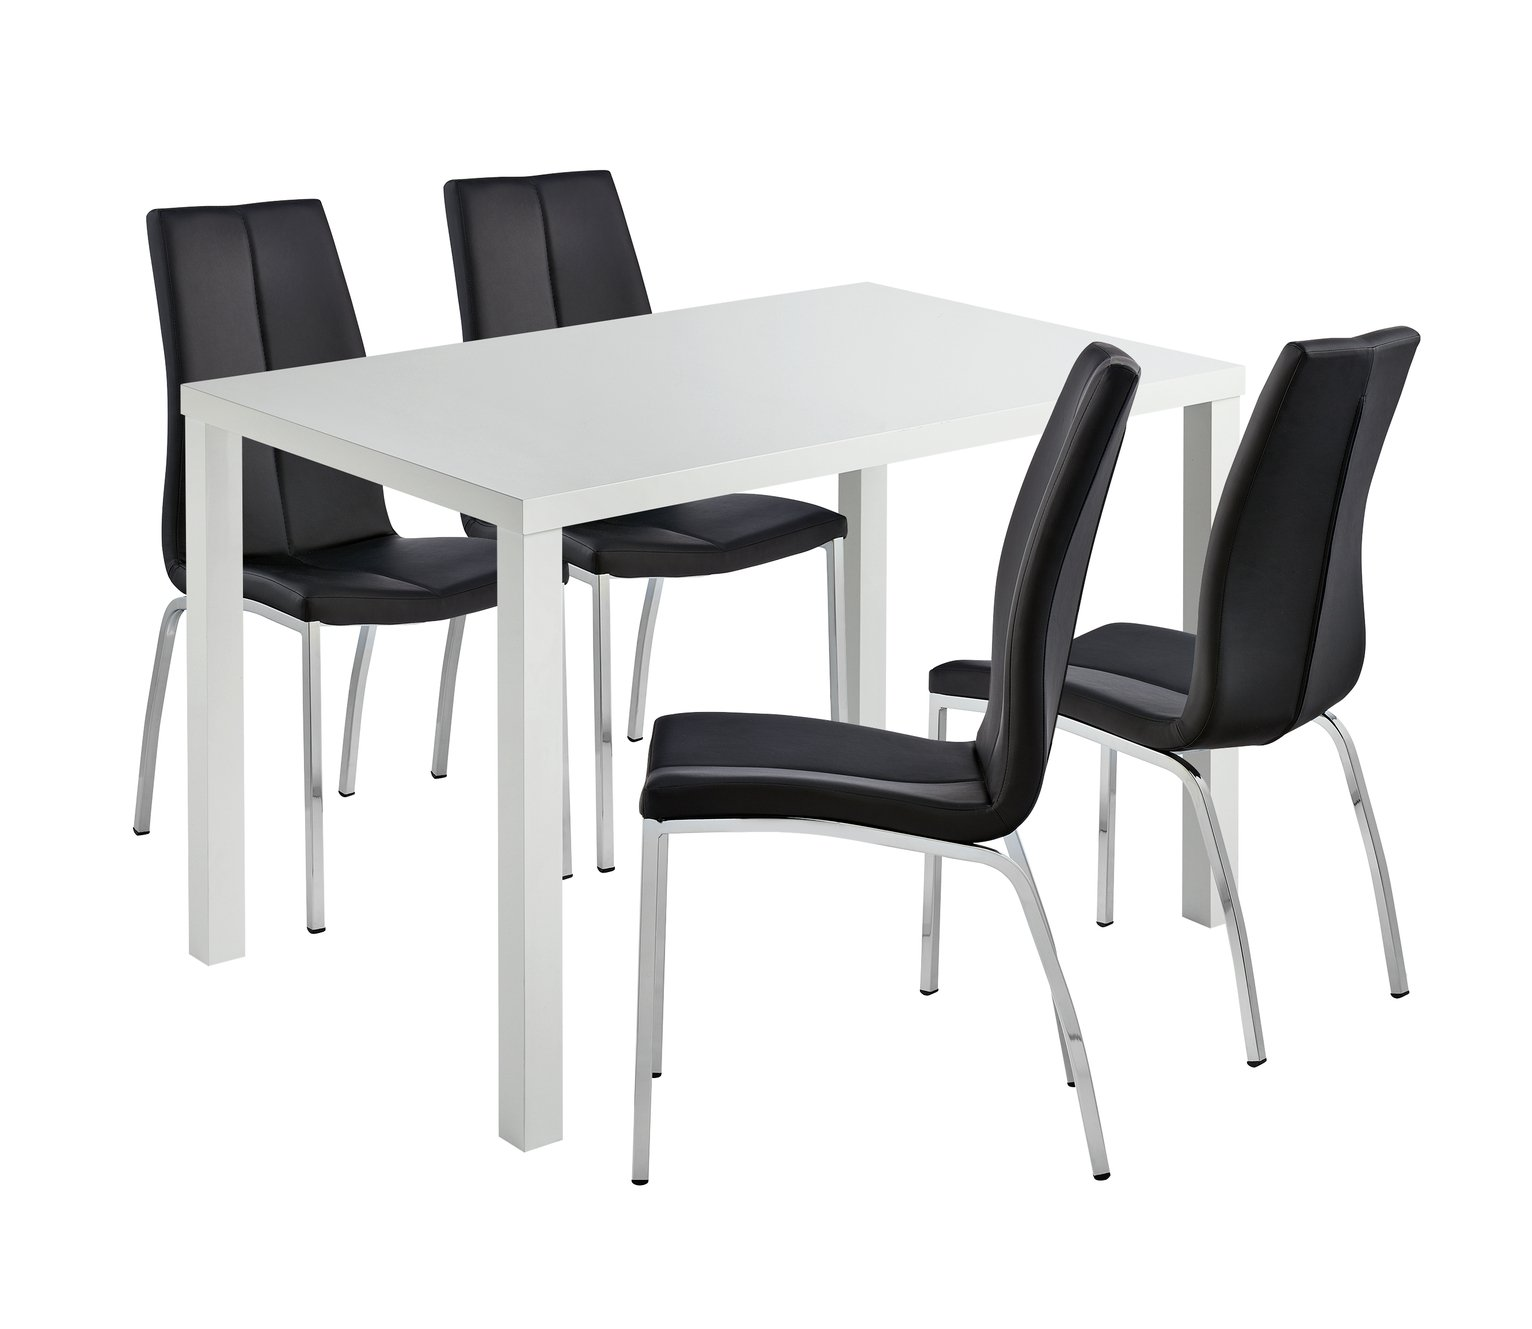 Argos Table And Chairs In Sale: SALE On Hygena Lyssa Dining Table & 4 Milo Chairs